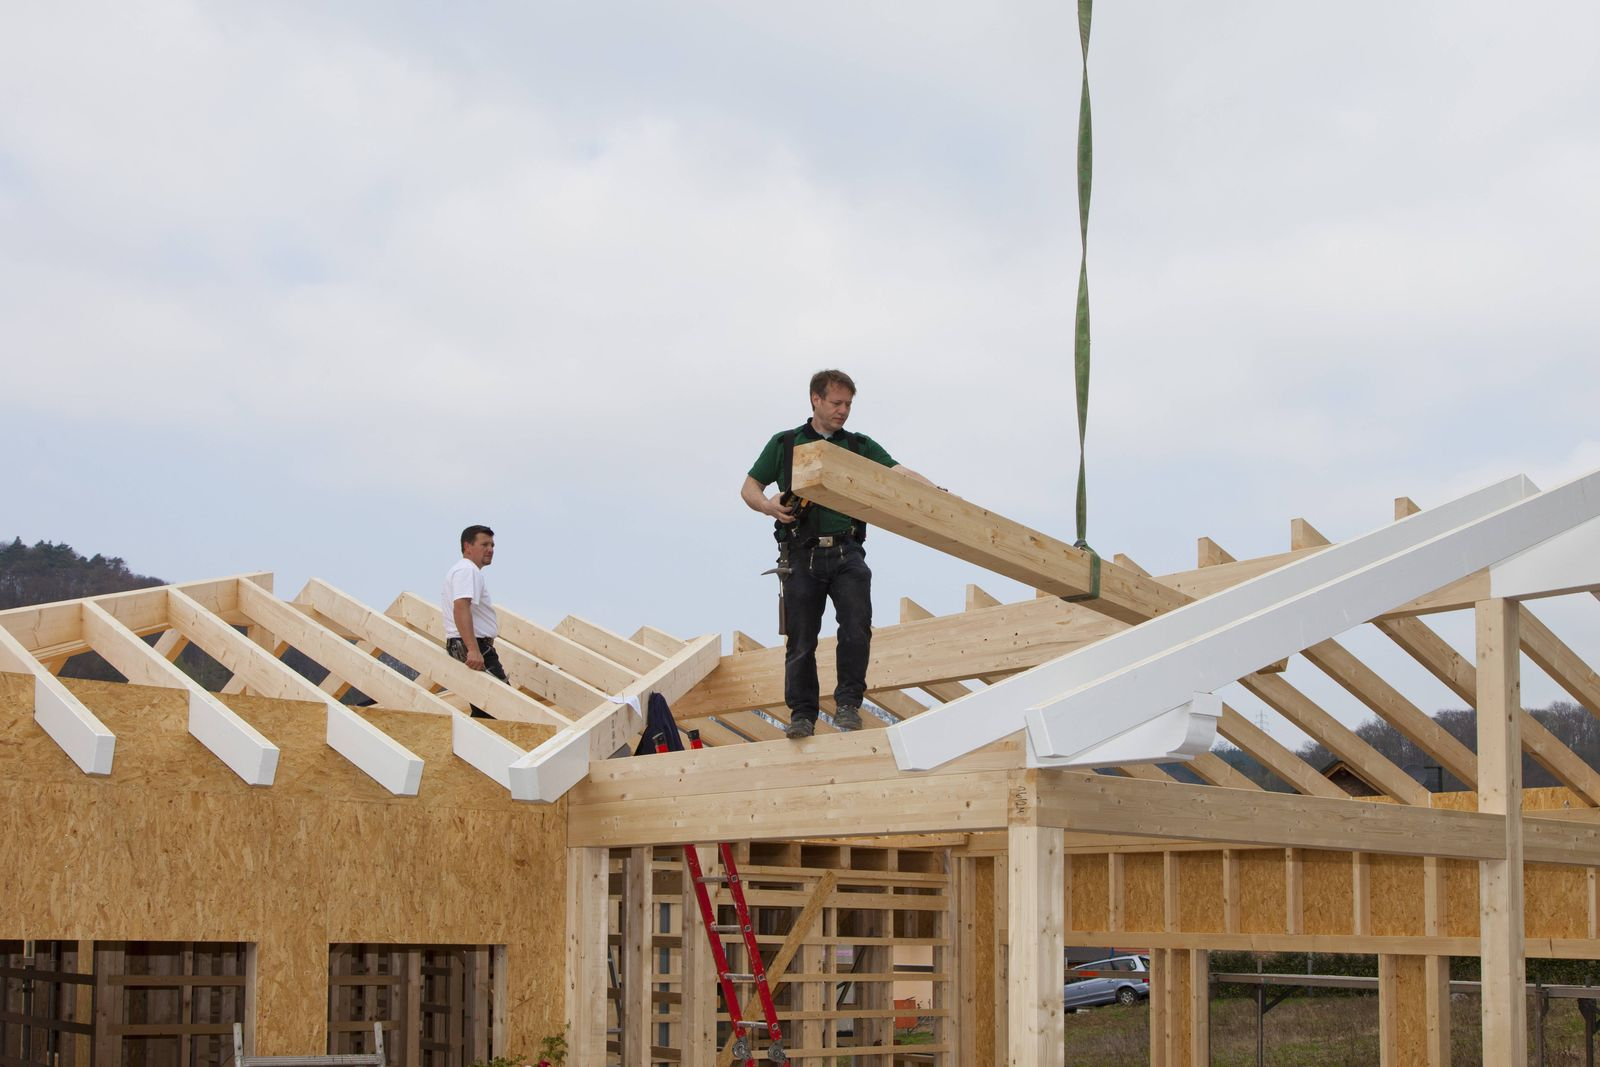 Europe Germany Rhineland Palatinate Men working on roof of house model released property released